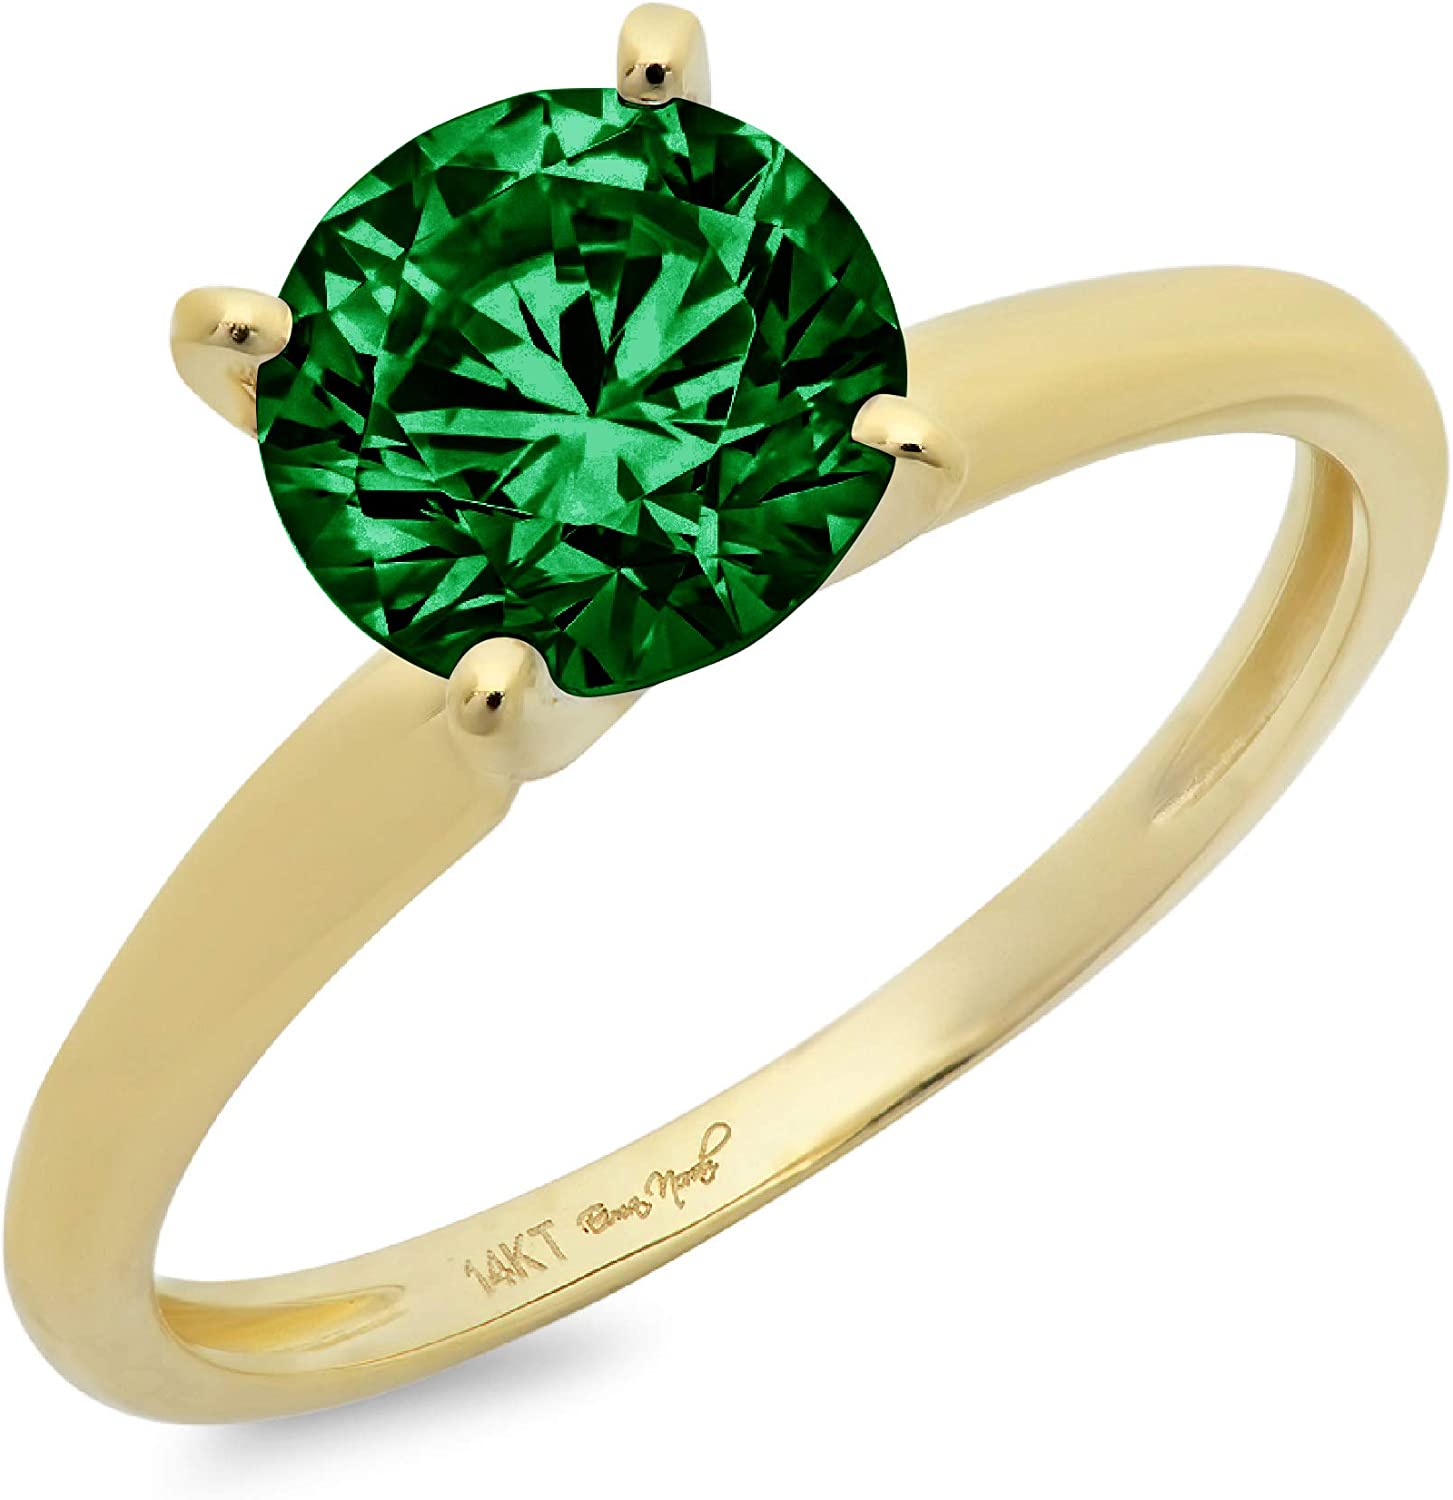 1.4ct Brilliant Round Cut Solitaire Flawless Simulated Cubic Zirconia Green Emerald Ideal VVS1 4-Prong Engagement Wedding Bridal Promise Anniversary Designer Ring in Solid 14k Yellow Gold for Women